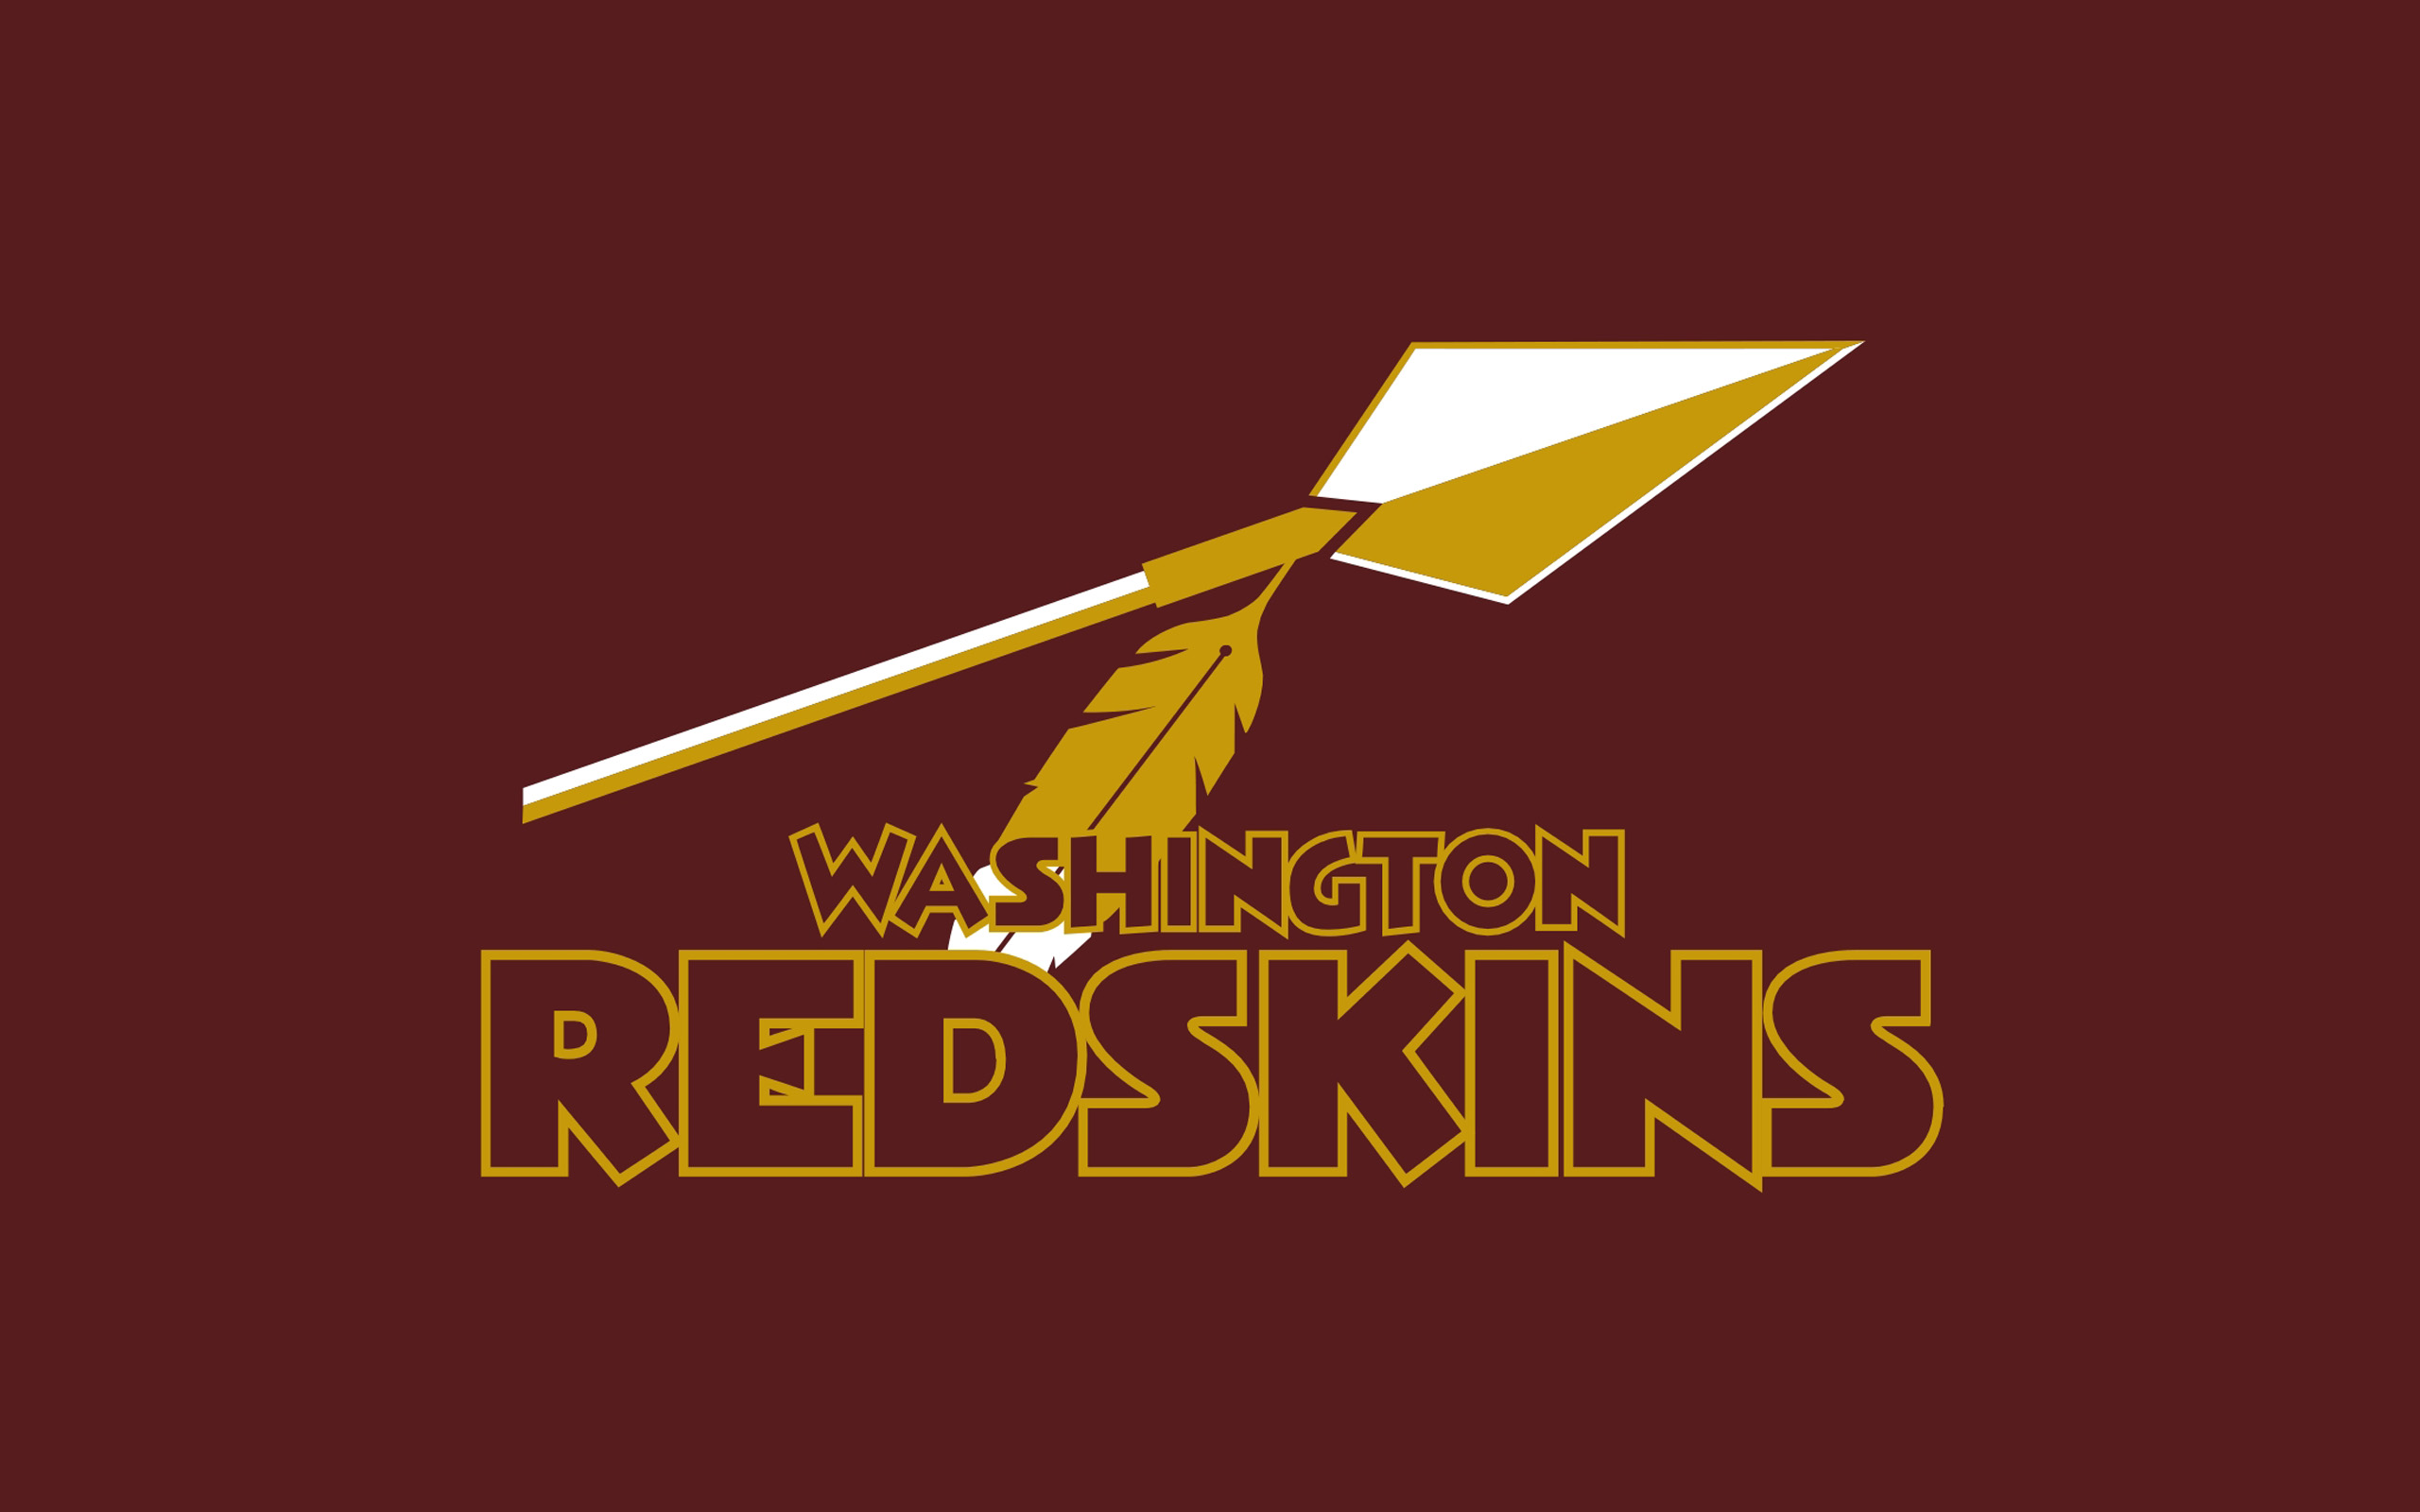 Washington Redskins Logo Wallpaper Background 55996 2560x1600 px